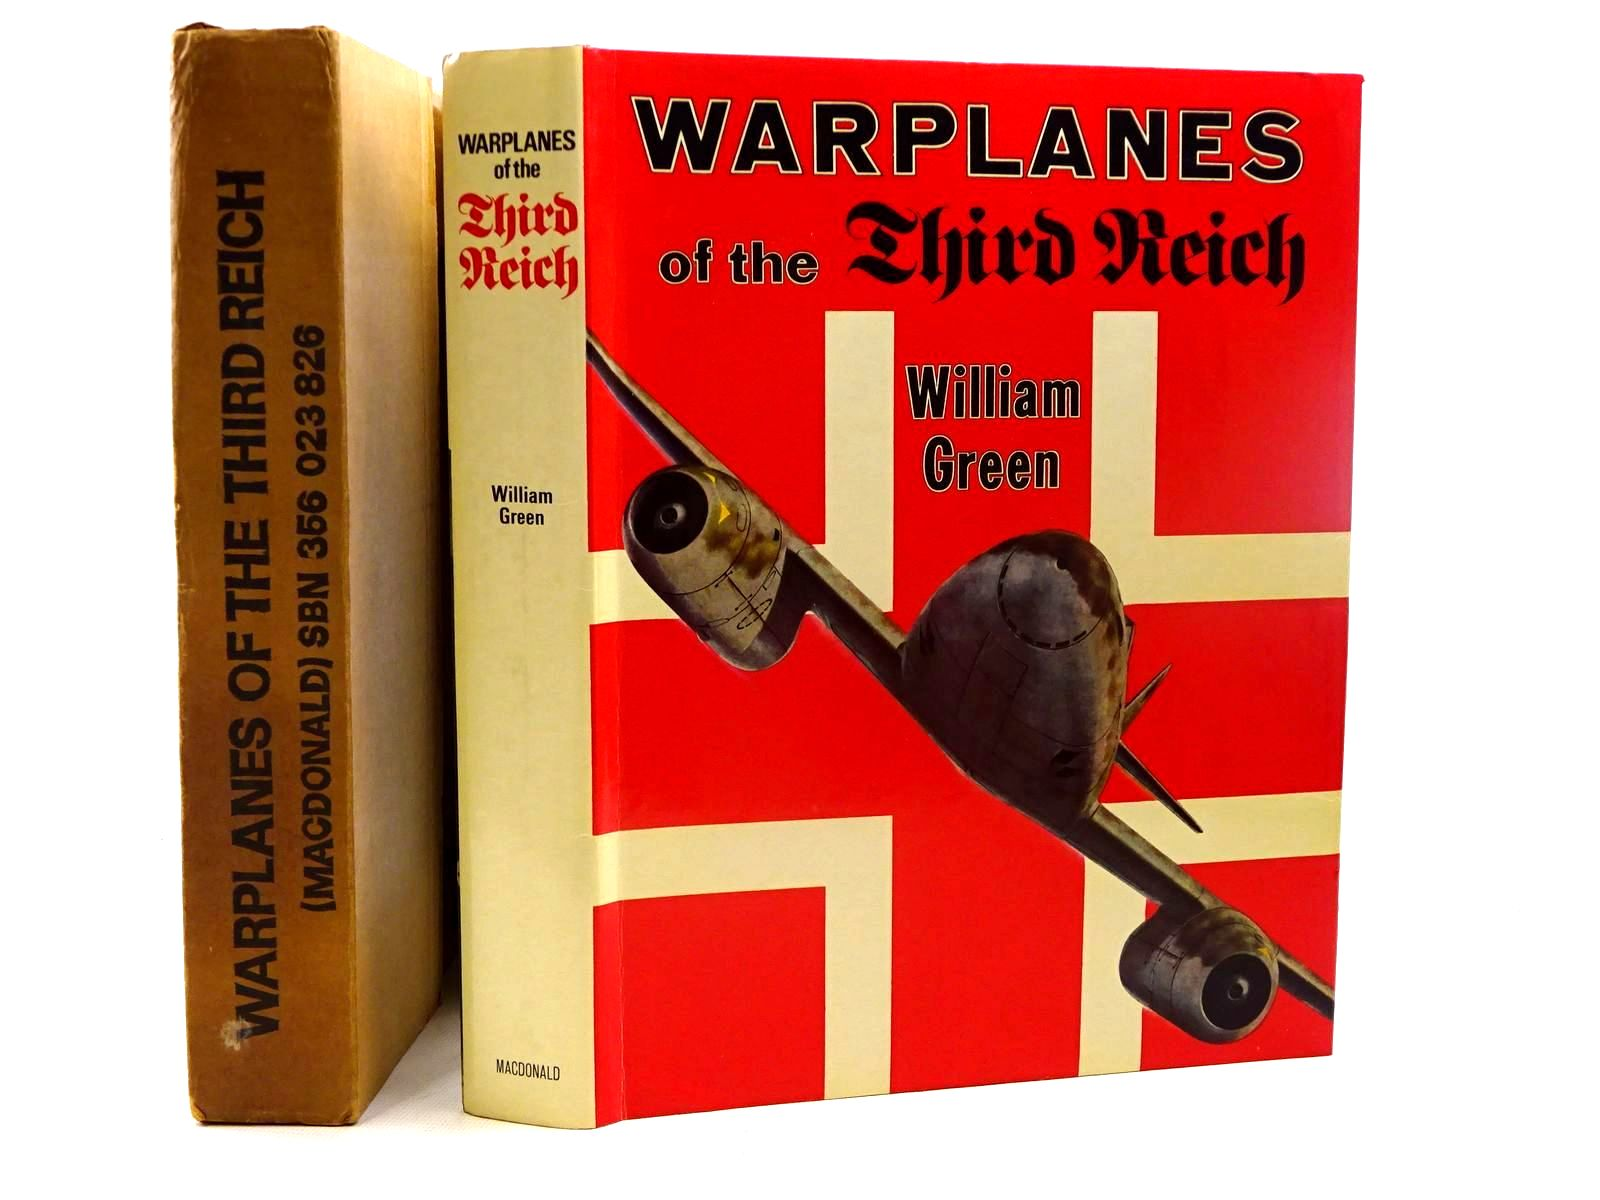 Photo of THE WARPLANES OF THE THIRD REICH written by Green, William illustrated by Punnett, Dennis published by Macdonald & Co. (Publishers) Ltd. (STOCK CODE: 2125472)  for sale by Stella & Rose's Books